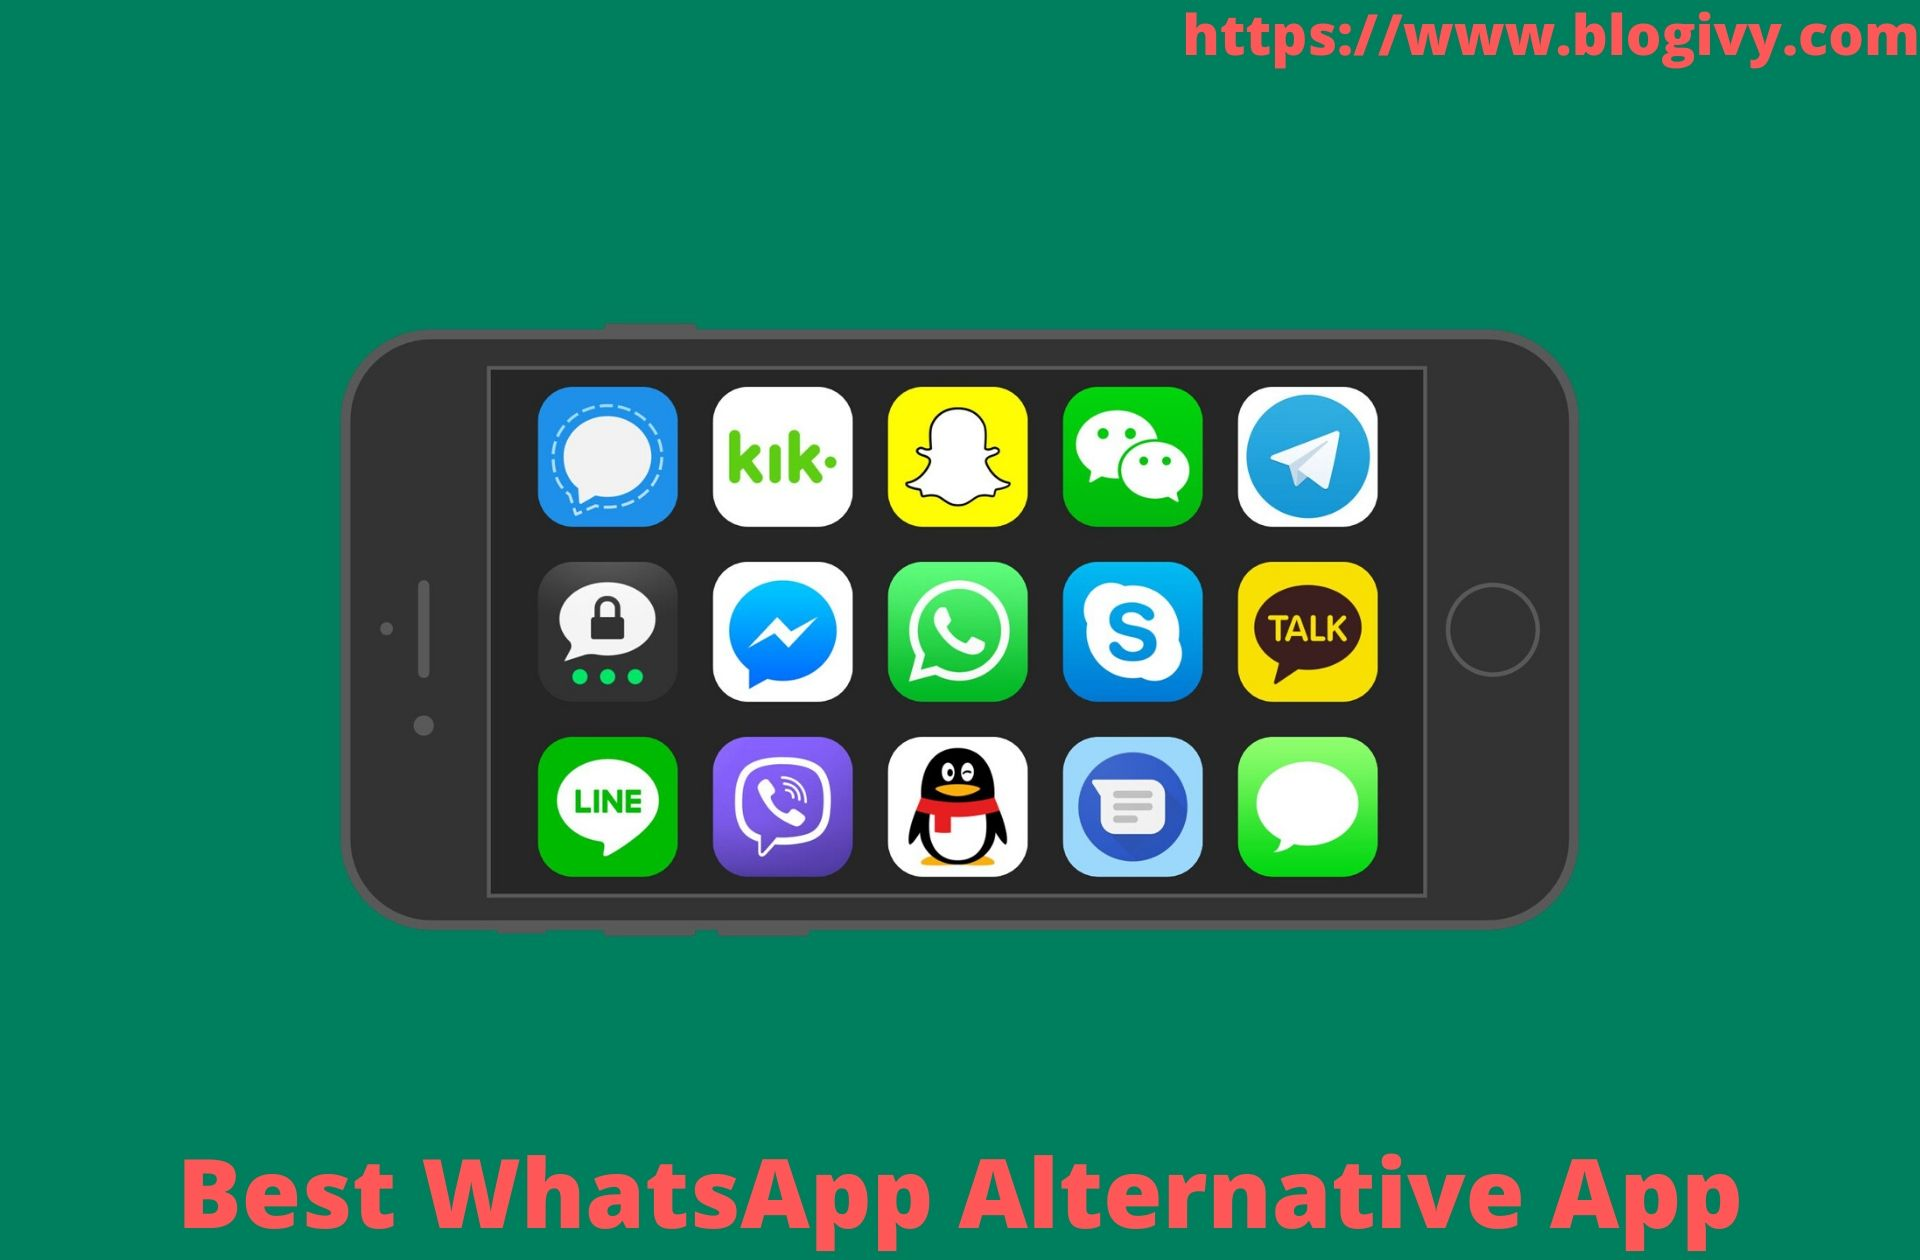 Best Whatsapp Alternative App